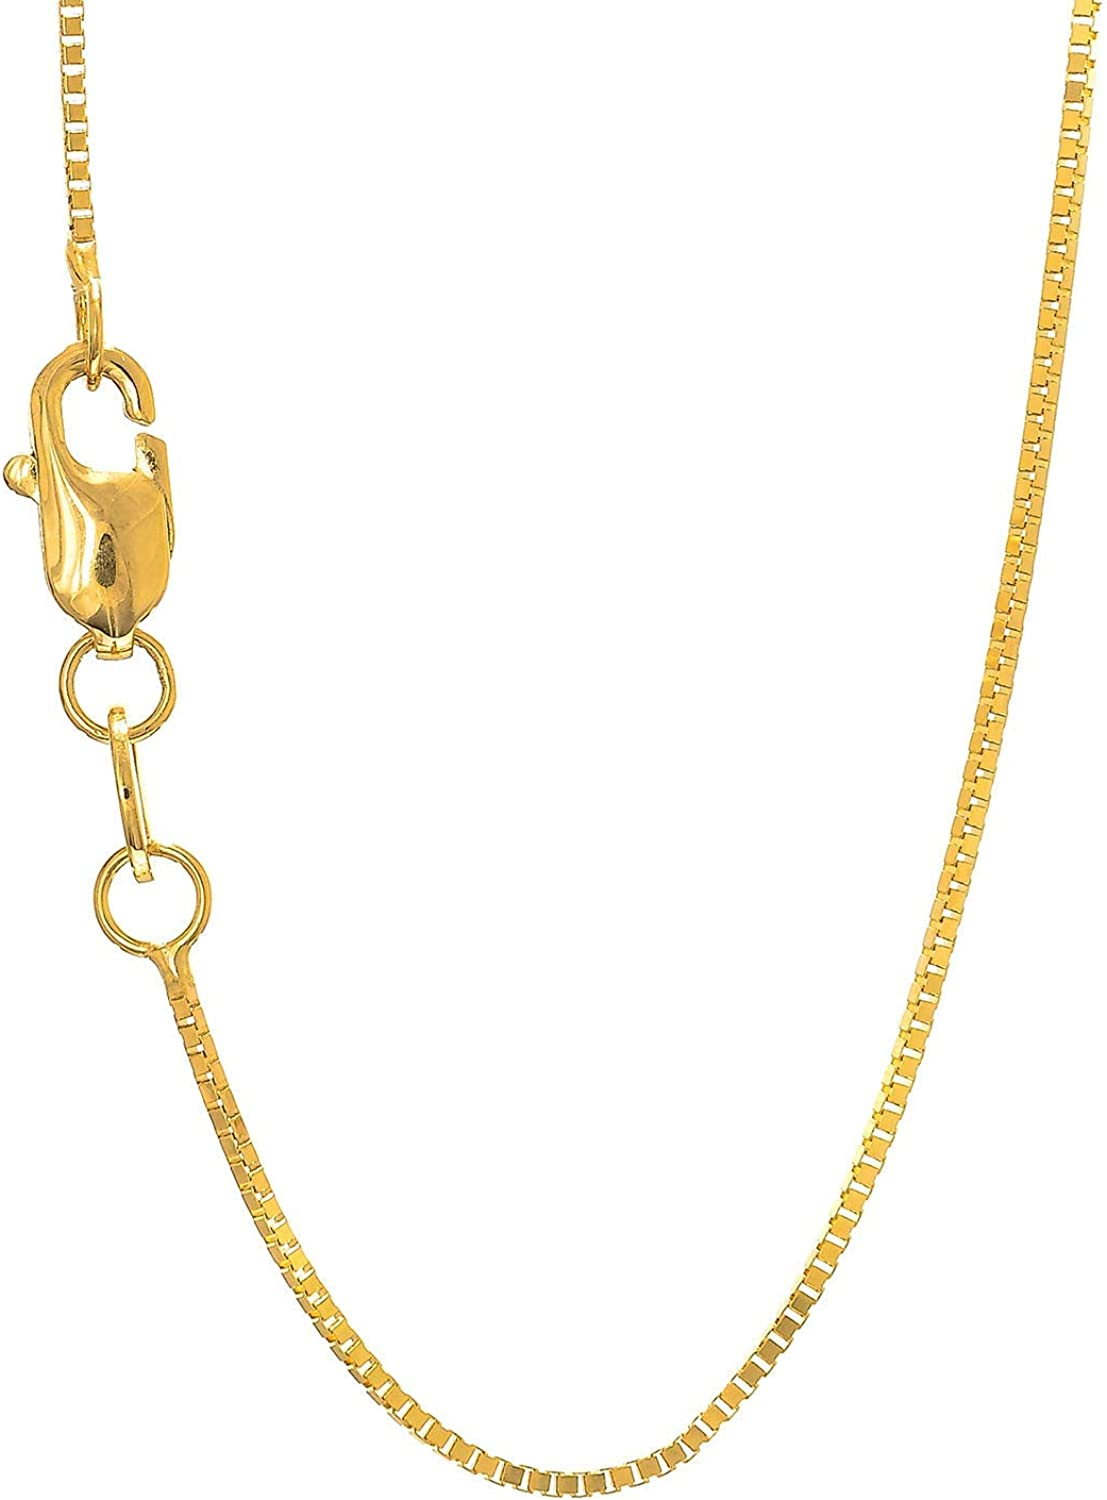 JewelStop 14k Solid Gold Yellow White Or Rose 0.7mm Box Chain Necklace - 16 18 20 22 24